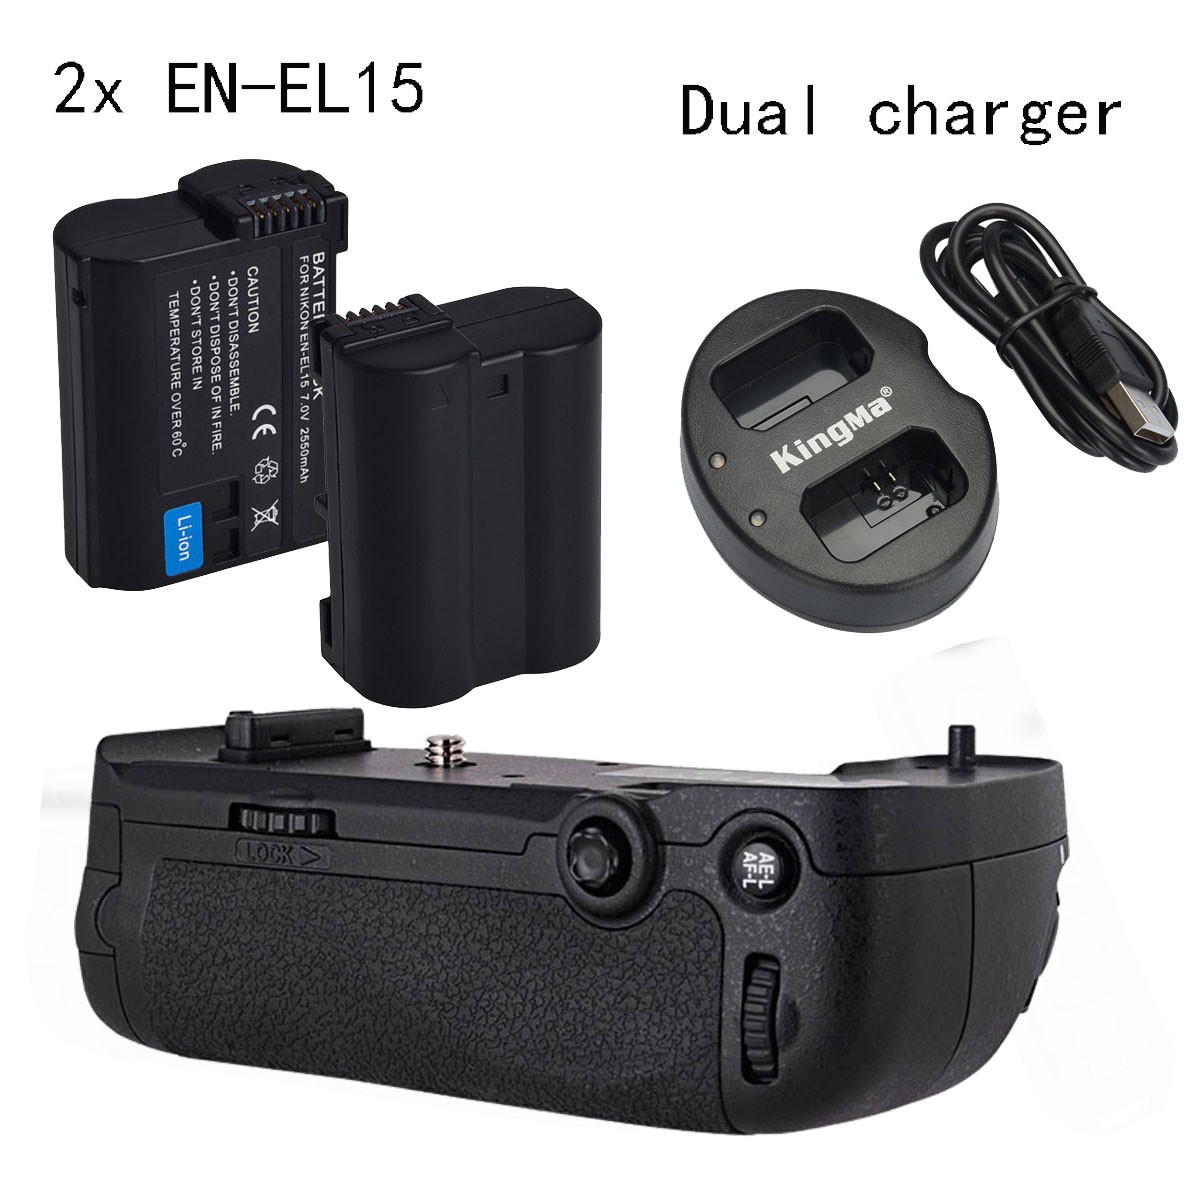 Meike vertical Battery Grip MK-D800 MK D800 for Nikon D800 D810 as MB-D12 + 2*EN-EL15 + Dual Charger meike mk dr750 vertical battery grip pack holder for nikon d750 rechargeable li ion battery for nikon en el15 cleaning kit